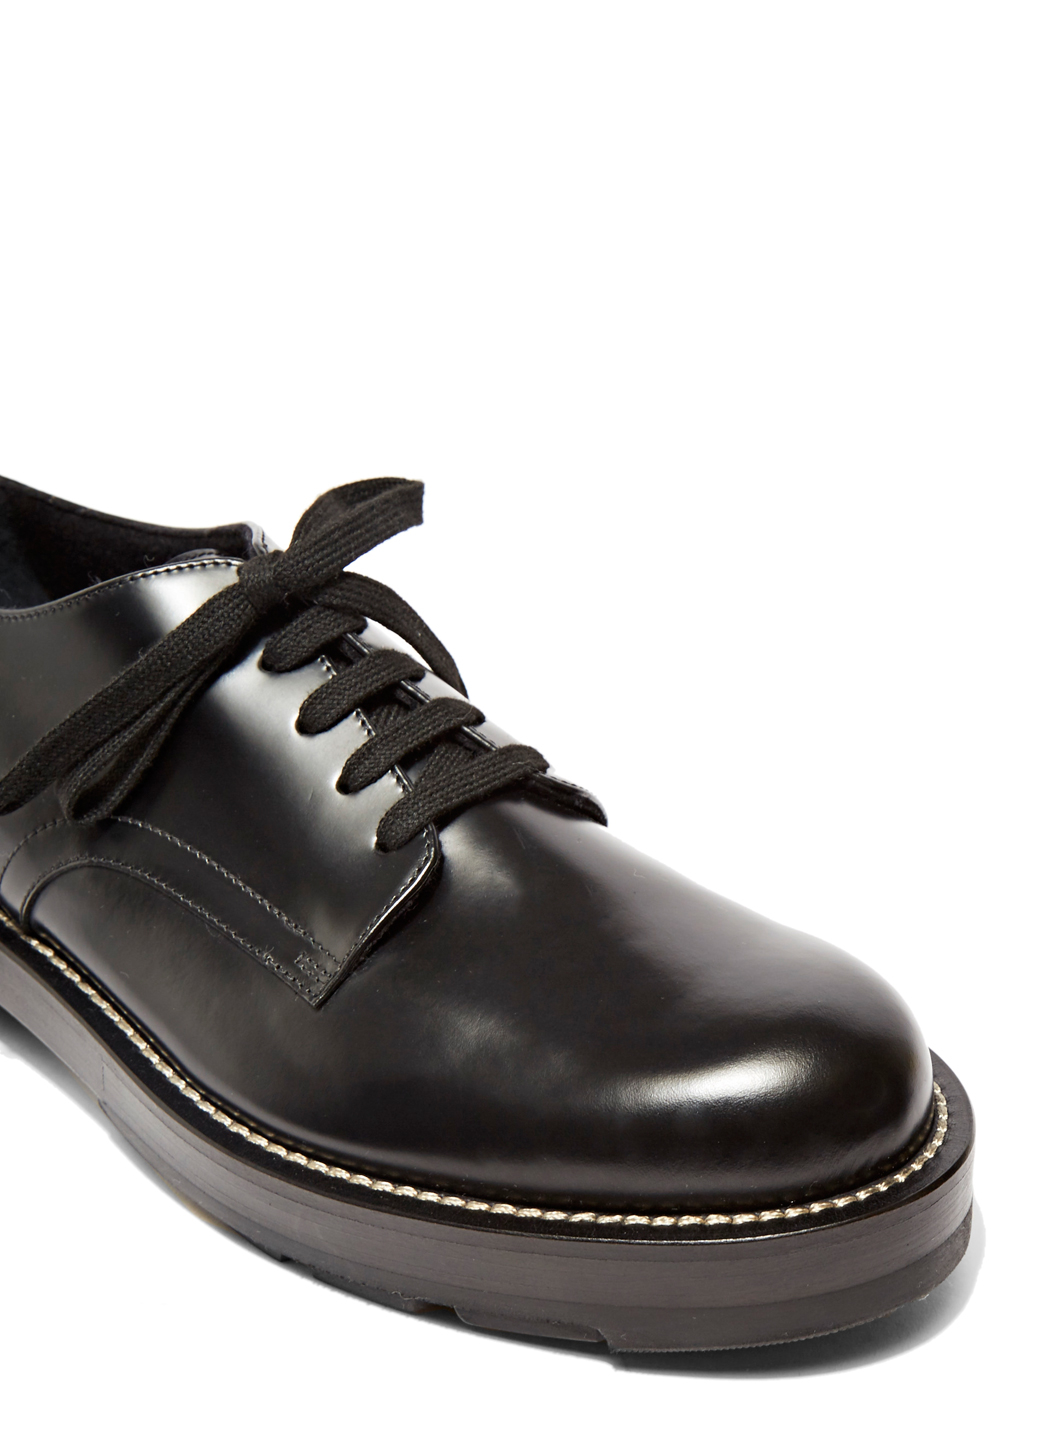 Marni Leather Derbies Purchase Online Free Shipping Enjoy Cheap Big Discount In China Cheap Price 0rr0h1R0